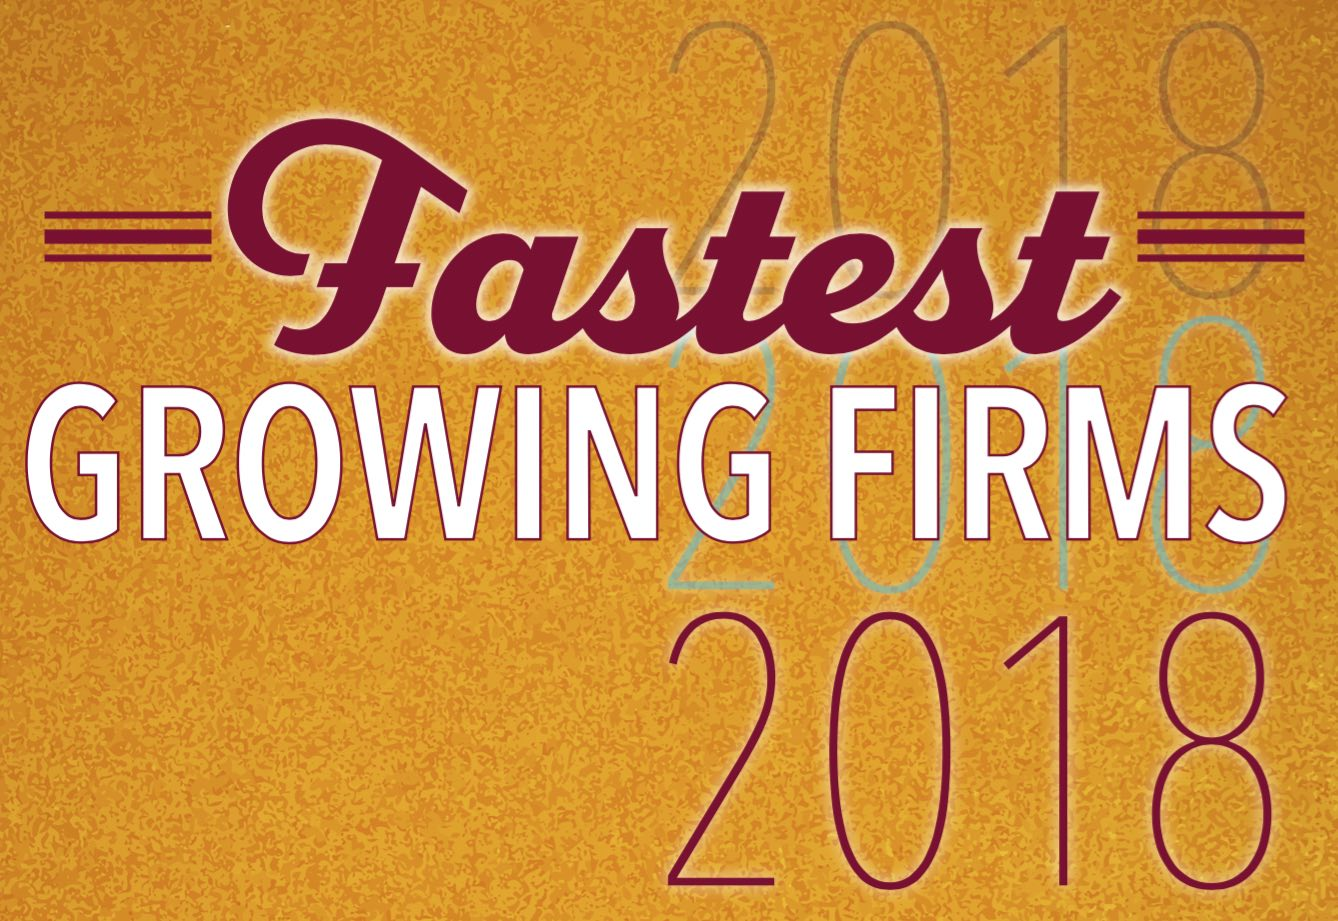 The 2018 Fastest Growing Firms